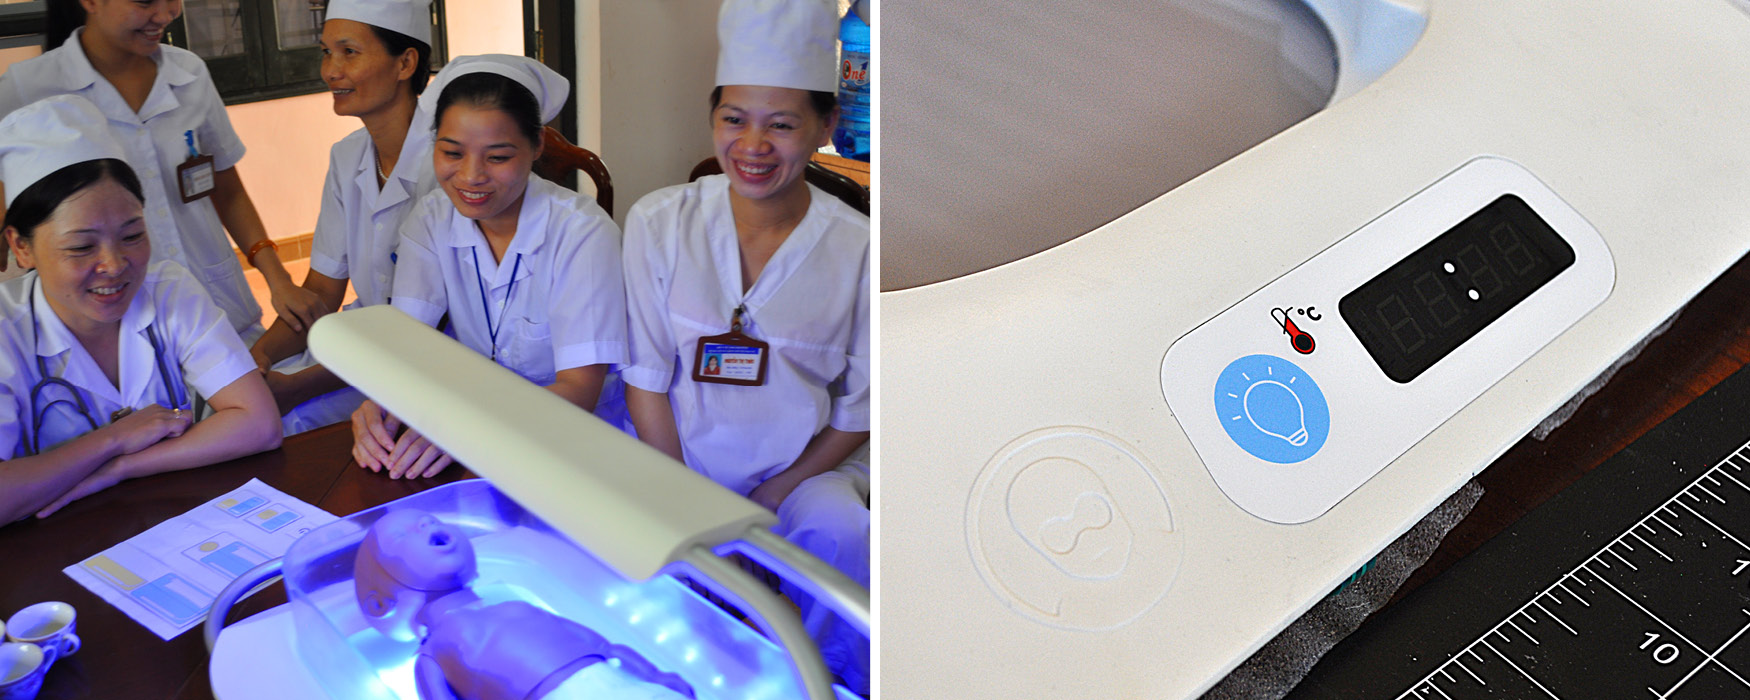 Left: Healthcare providers in Vietnam consider an array of different button option on paper. Right: The resulting simple, one-button Firefly control panel.